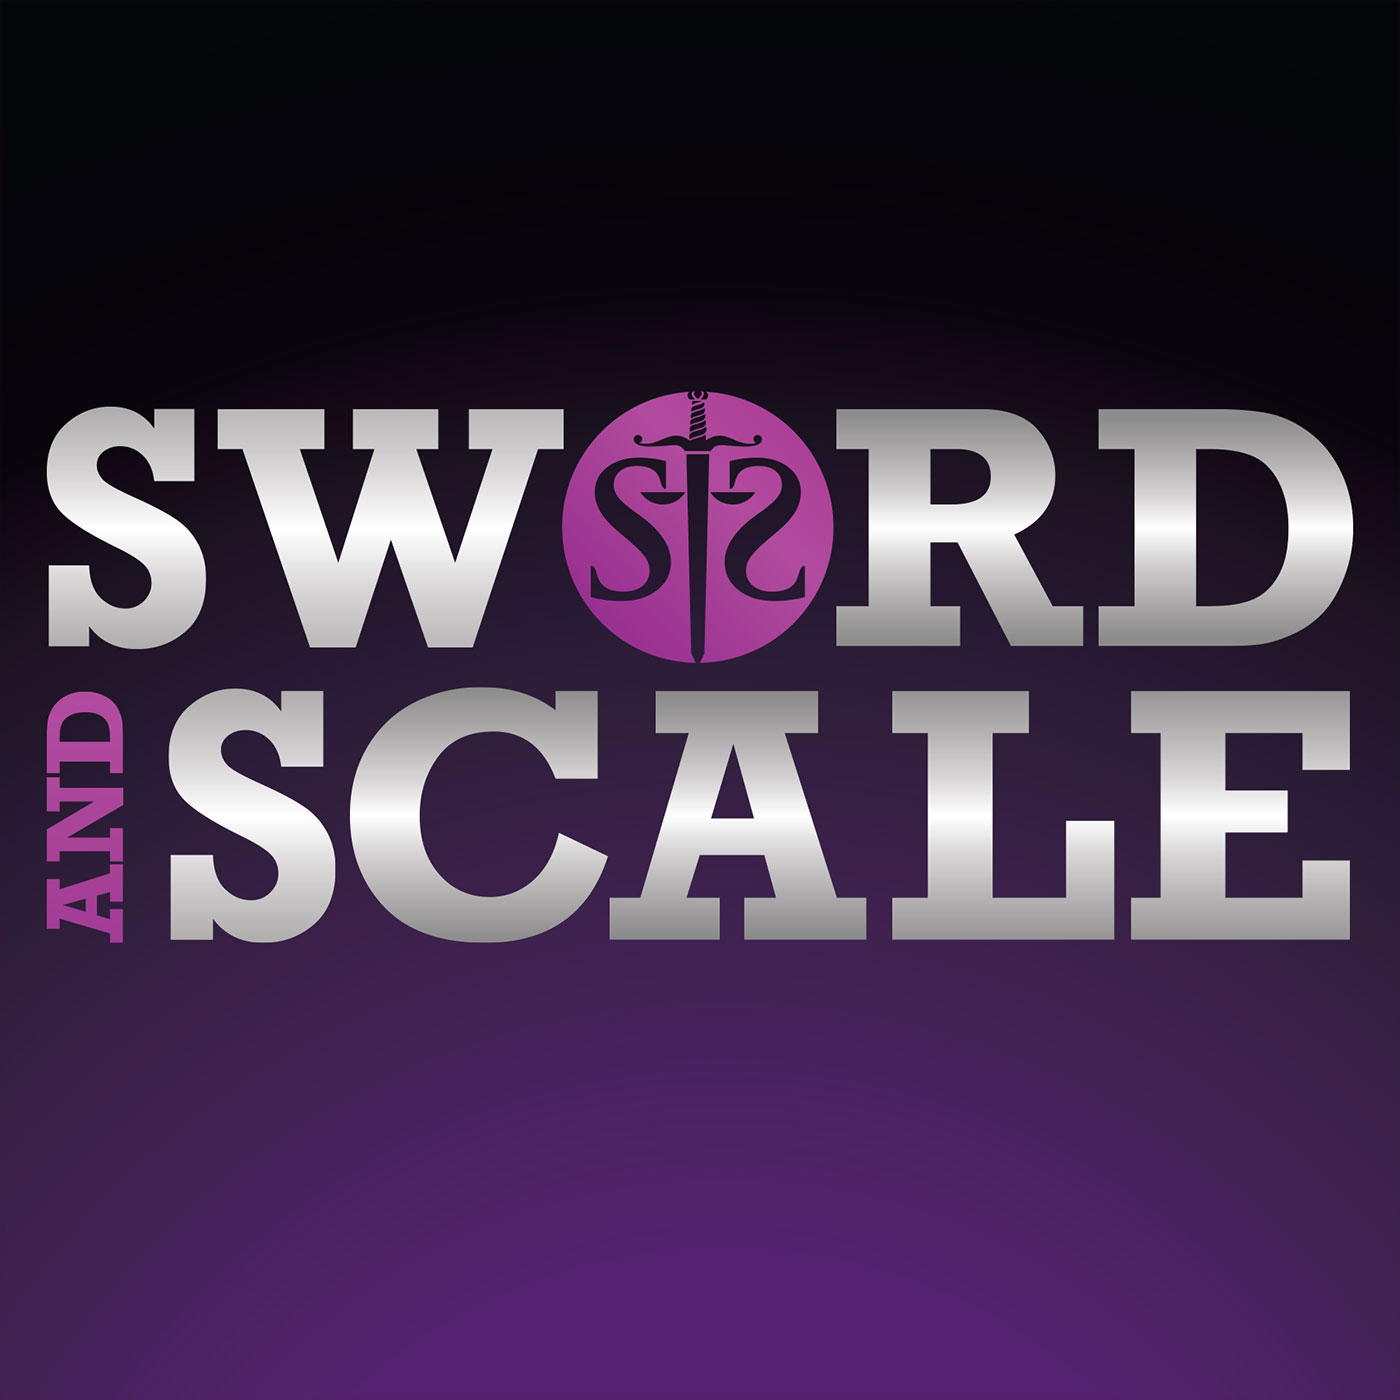 Caption: Sword and Scale, Credit: Mike Boudet